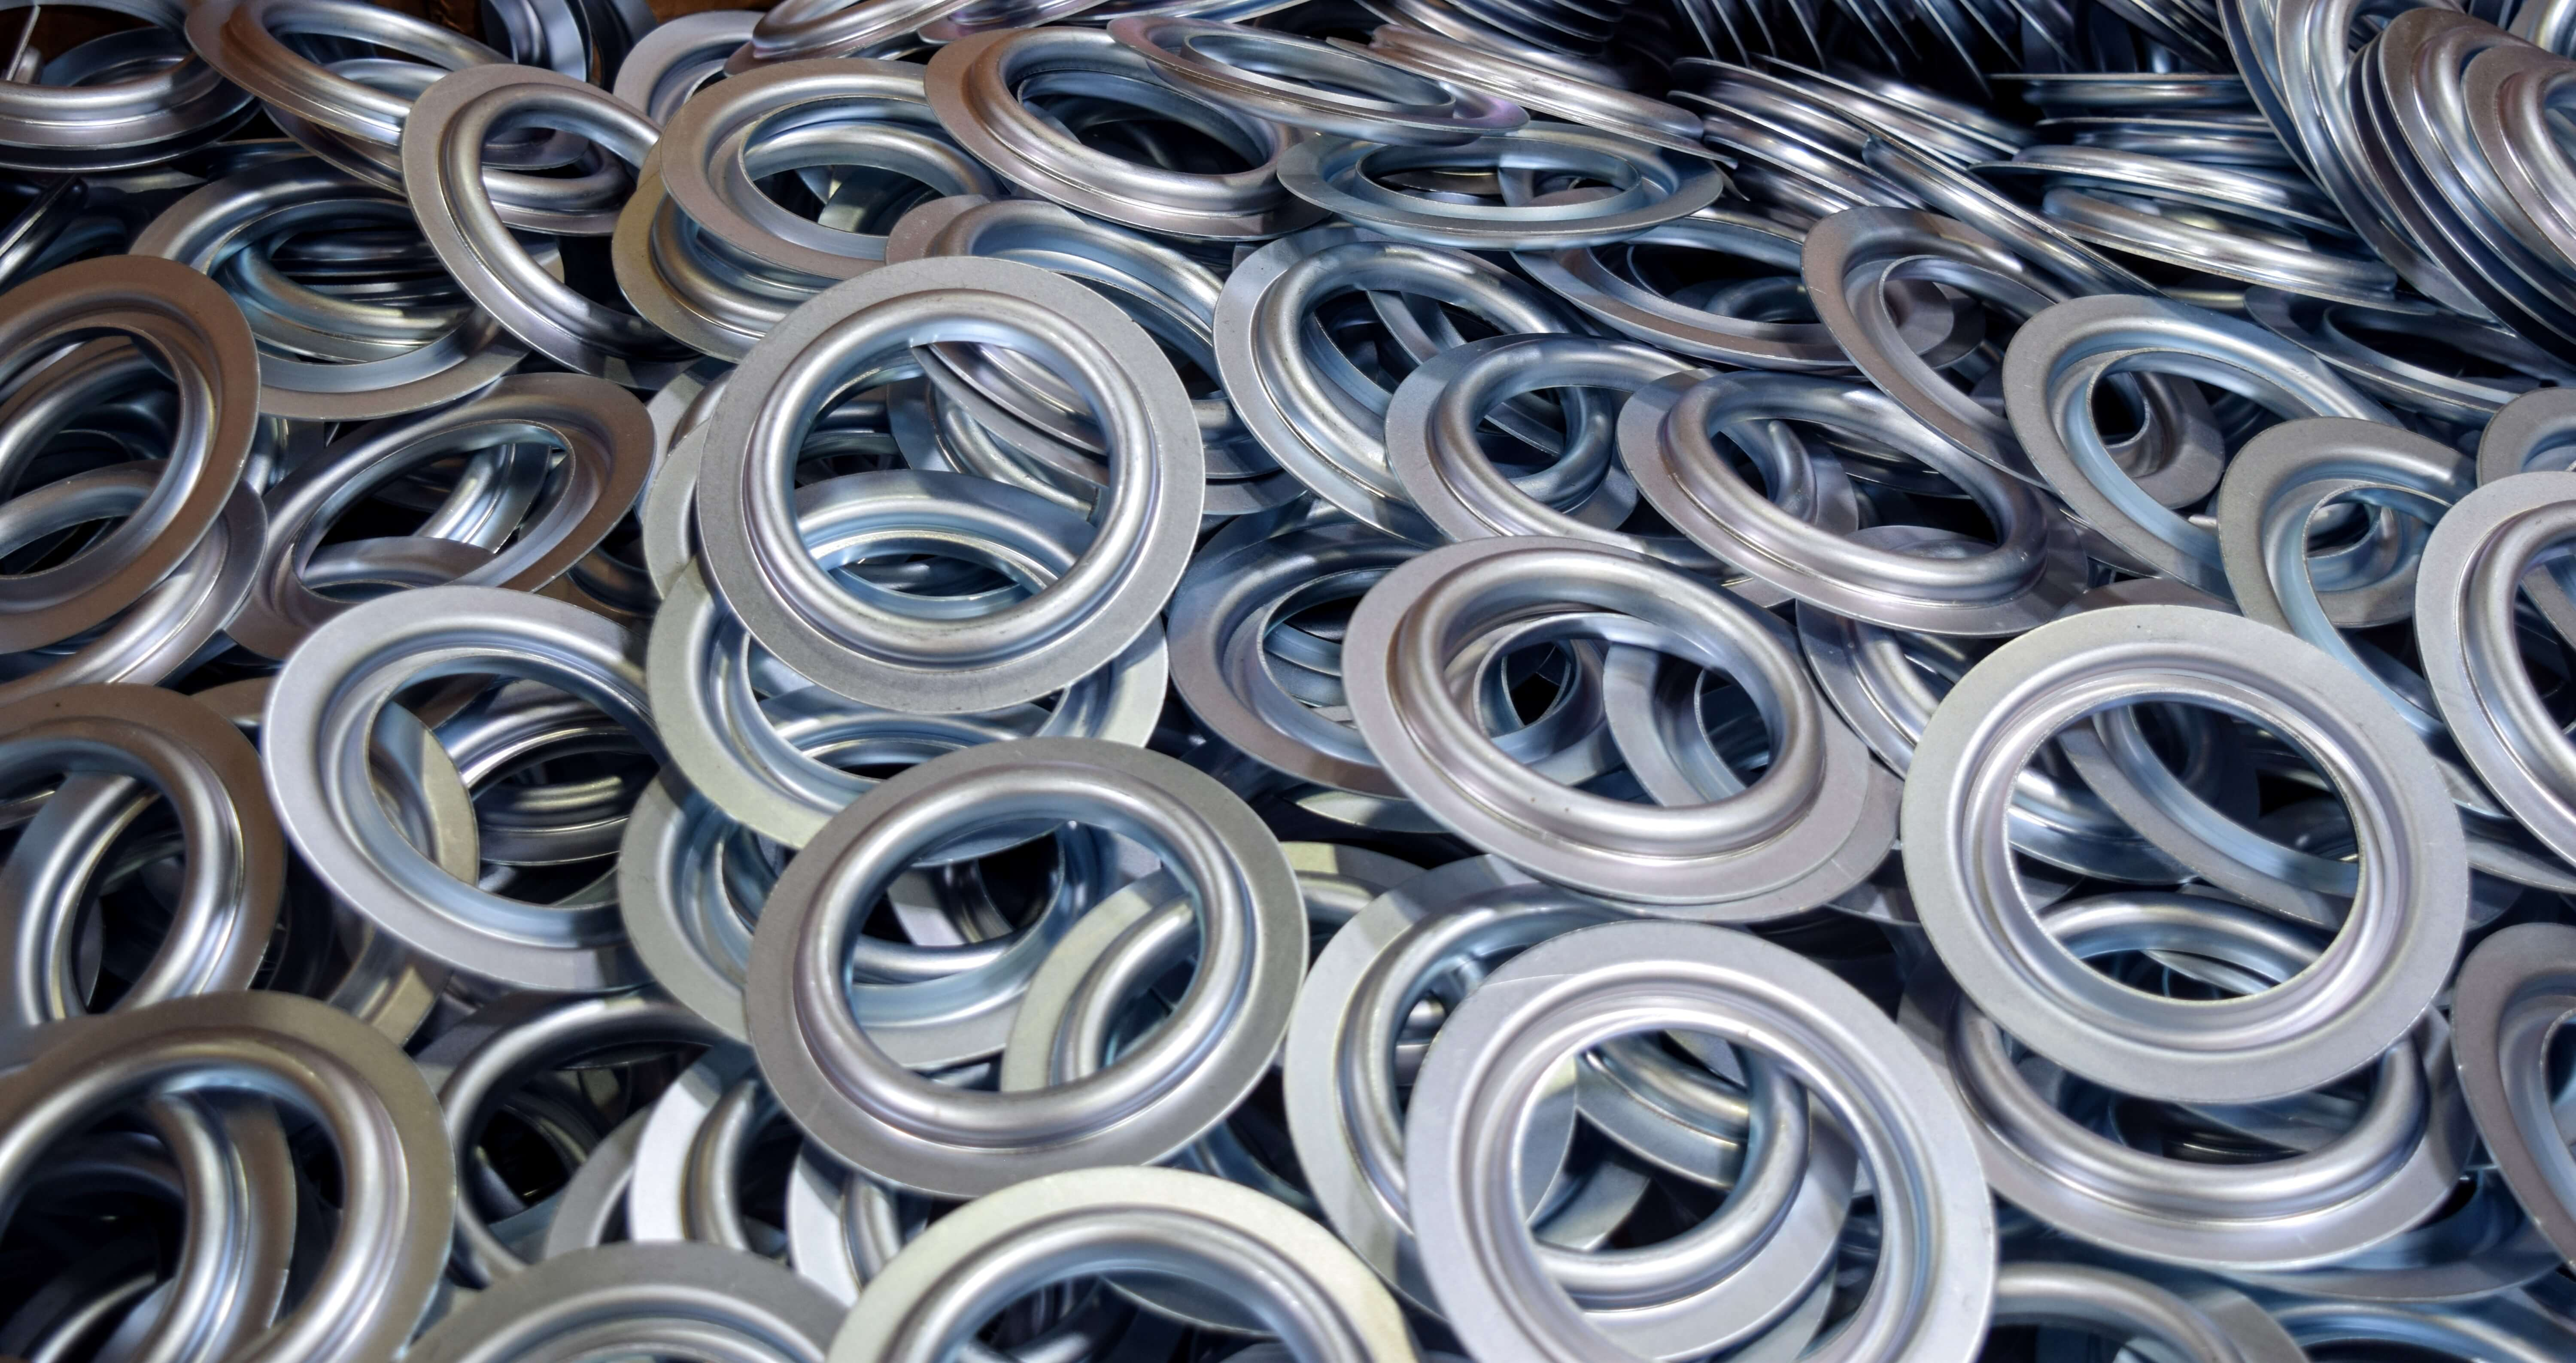 Clear Zinc Plating - Clear Zinc Chromate Plating | Gatto Industrial